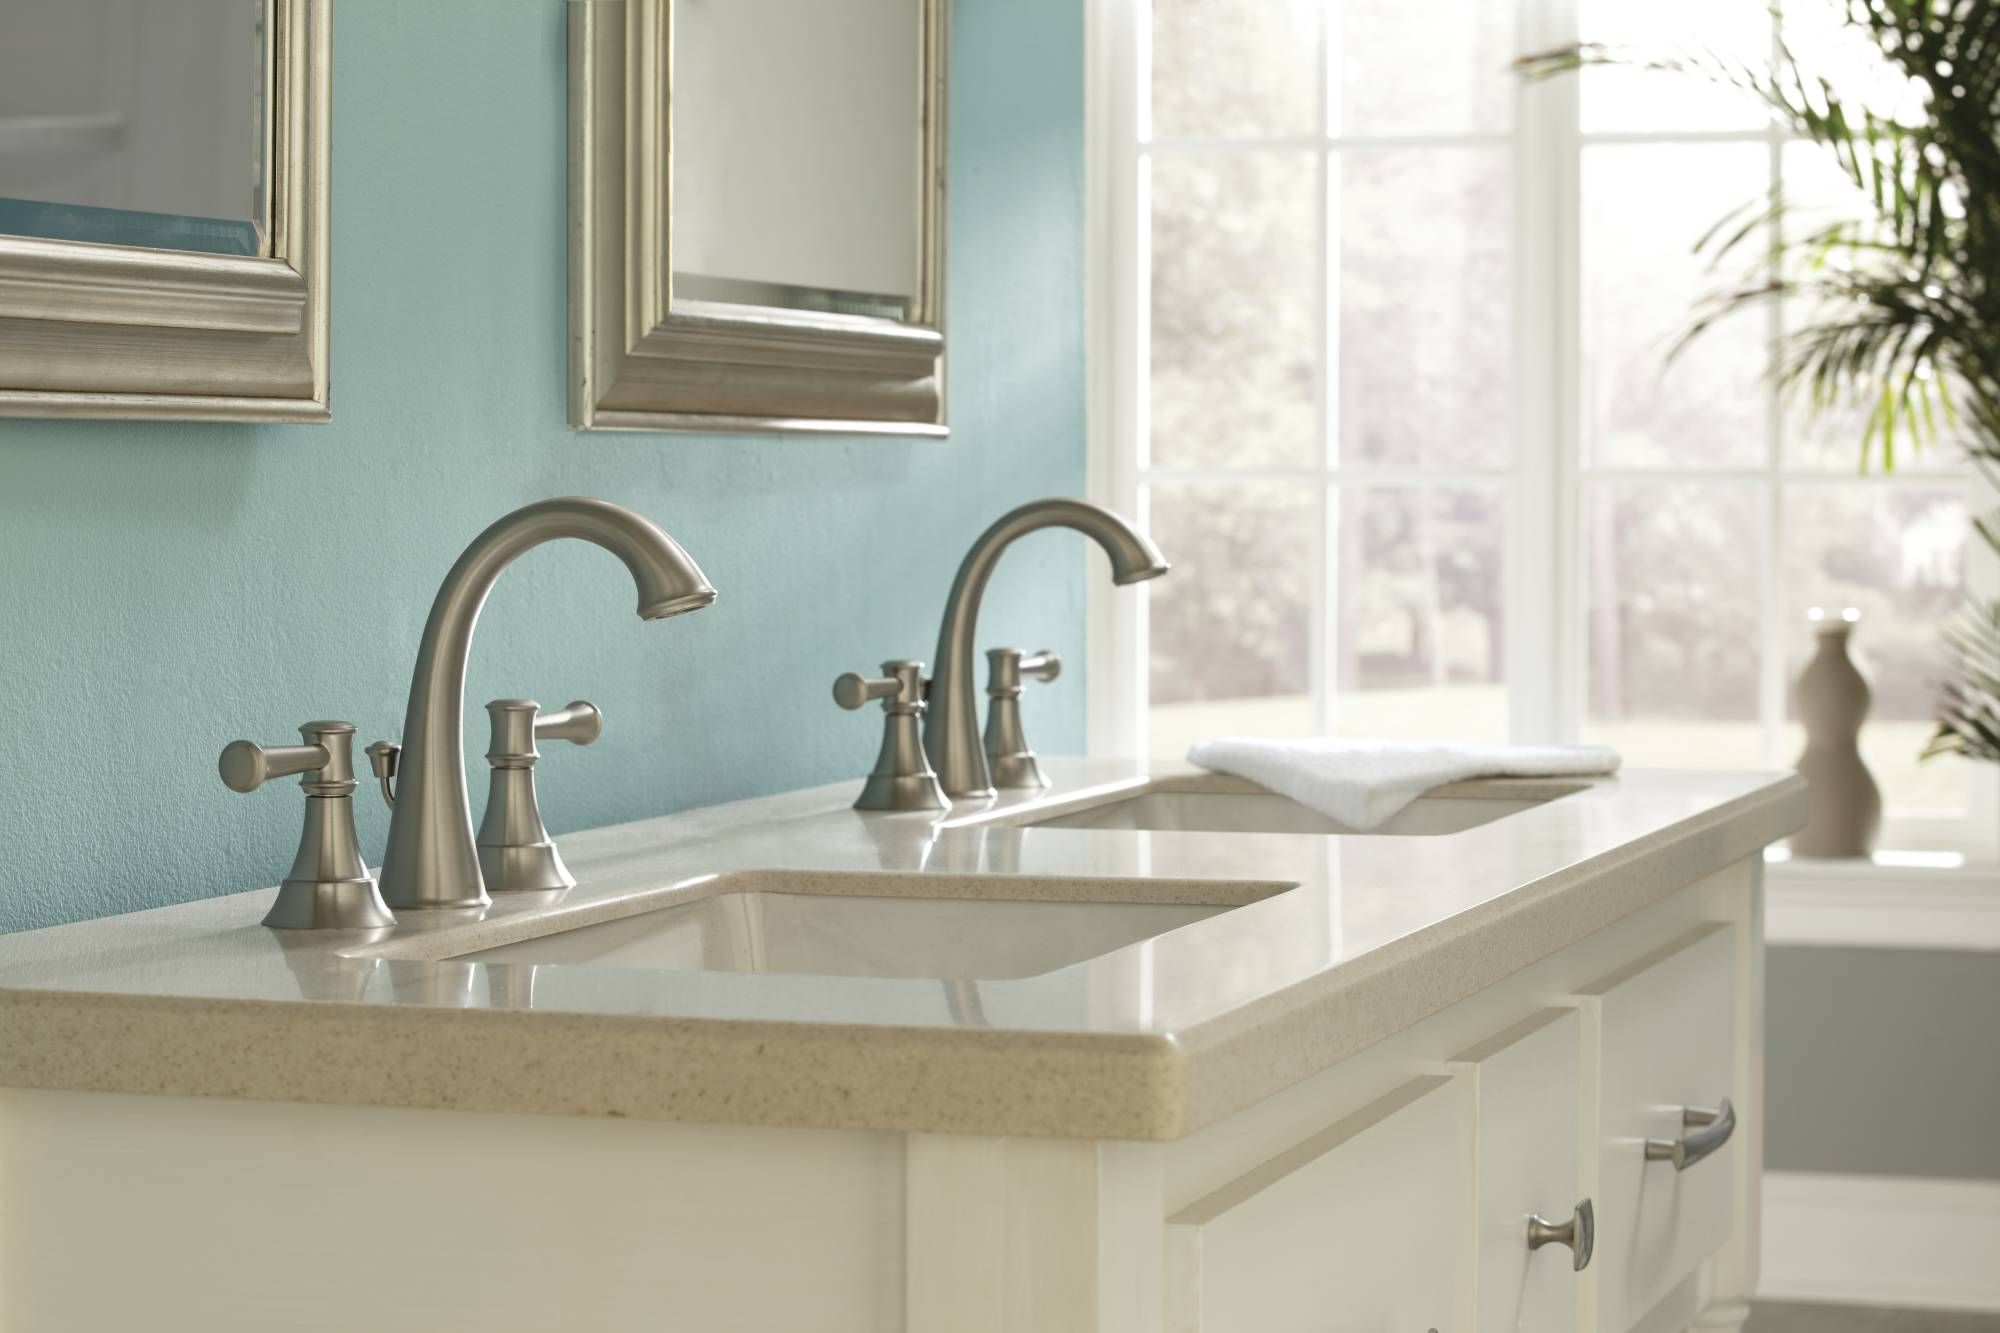 Pin By Smiths Floor Store On Amazing Choices Bathrooms Fixtures Accessories High Arc Bathroom Faucet Bathroom Faucets Affordable Bathroom Remodel